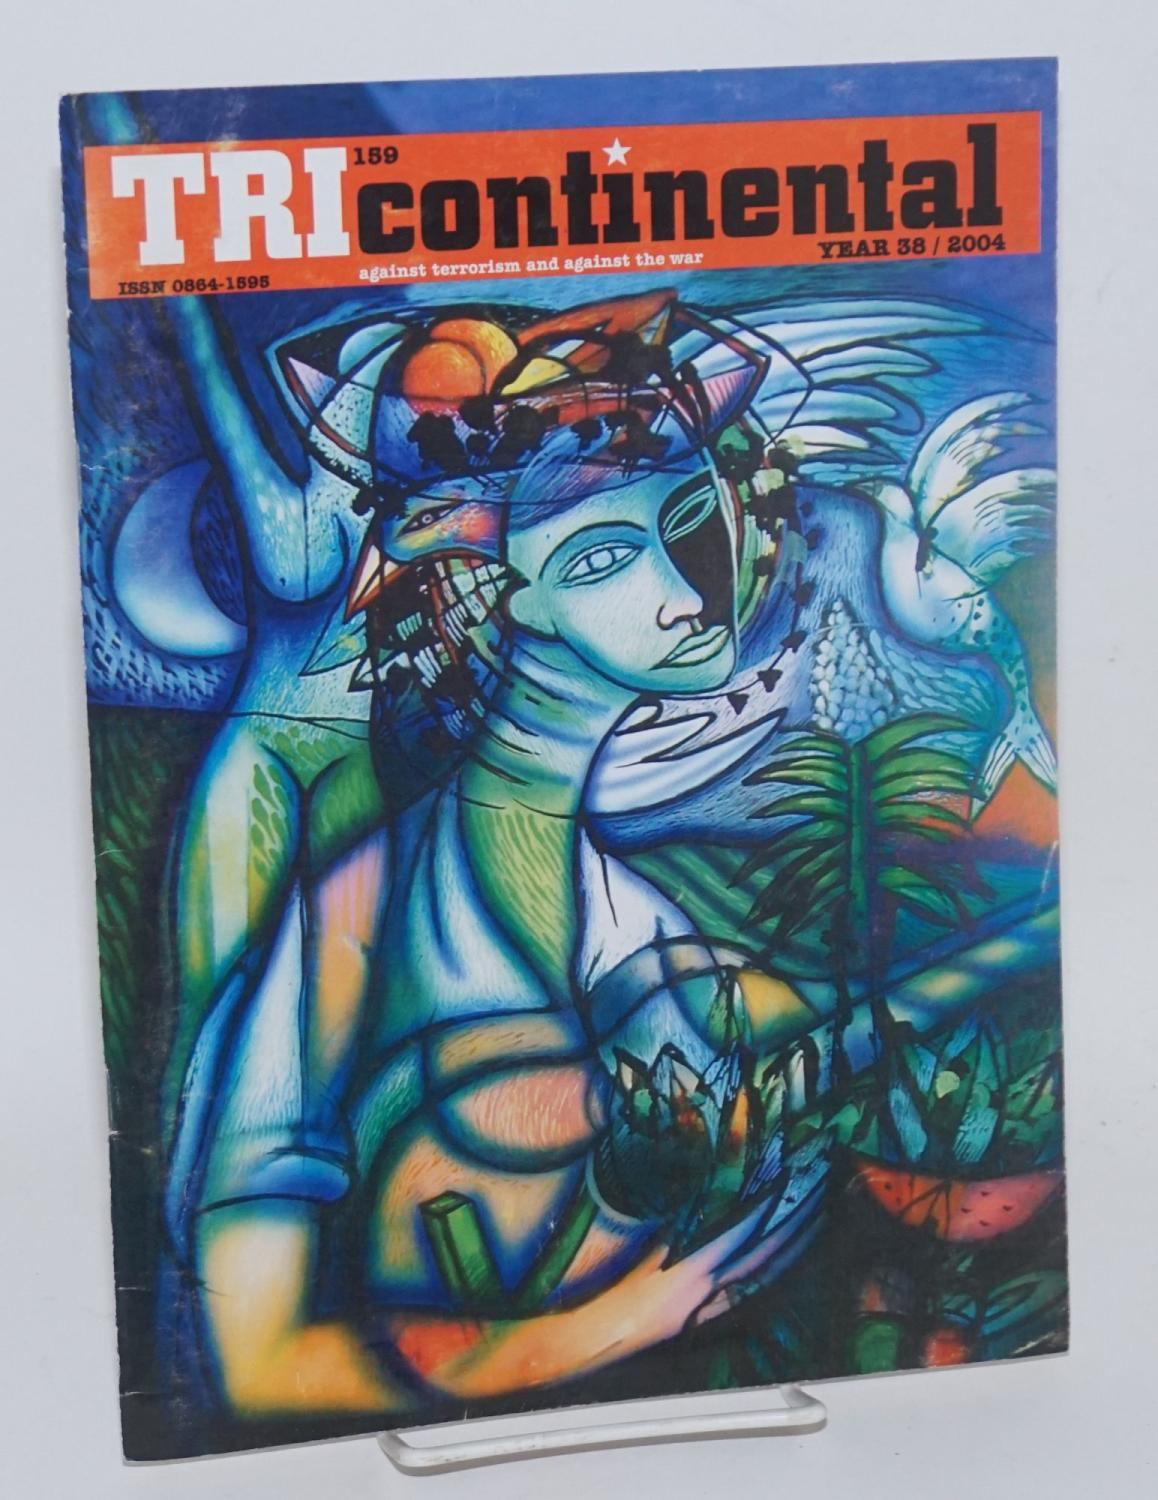 Tricontinental Against Terrorism And